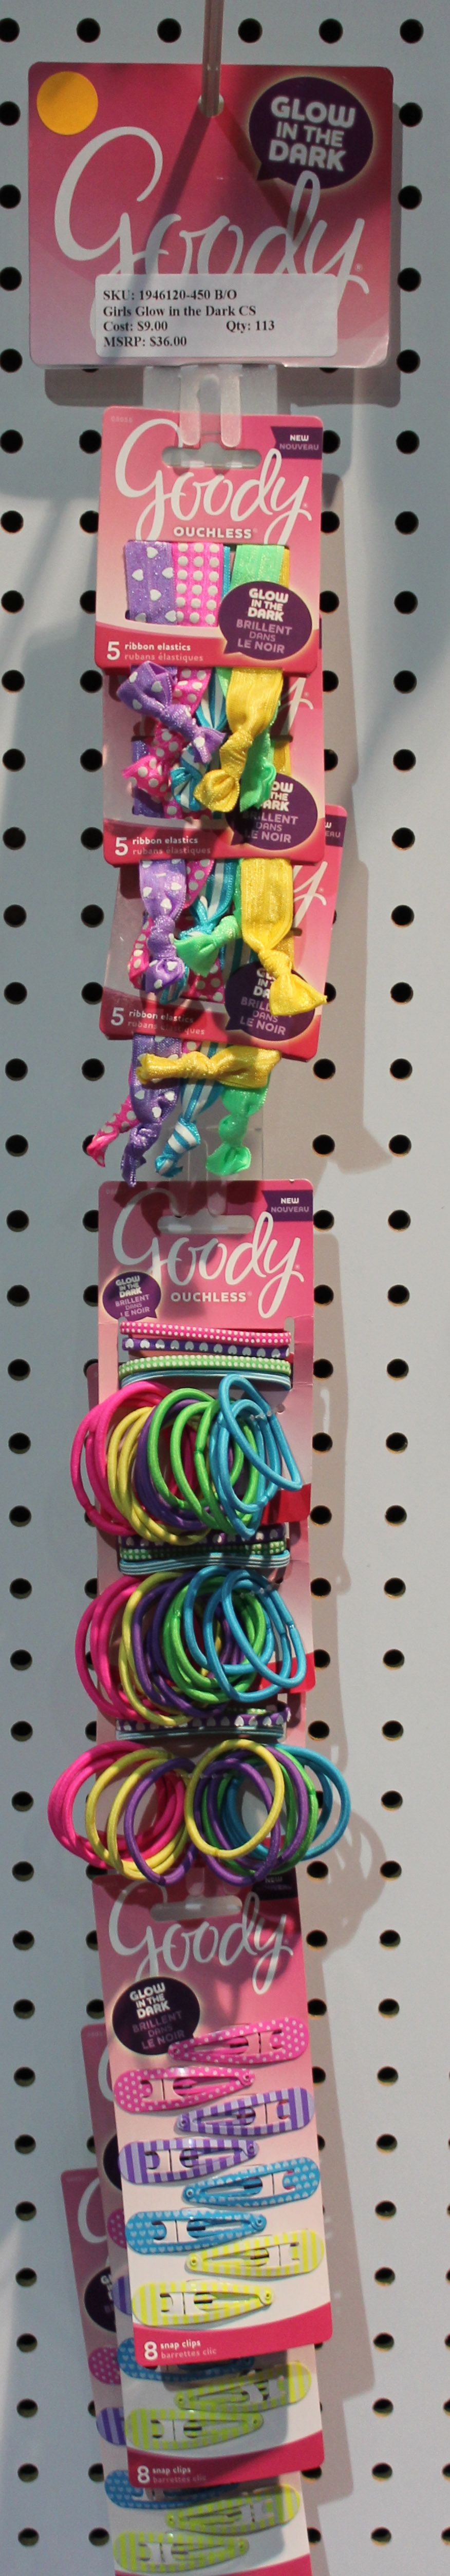 Glow in the dark Goody hair accessories 9 pack clip strip